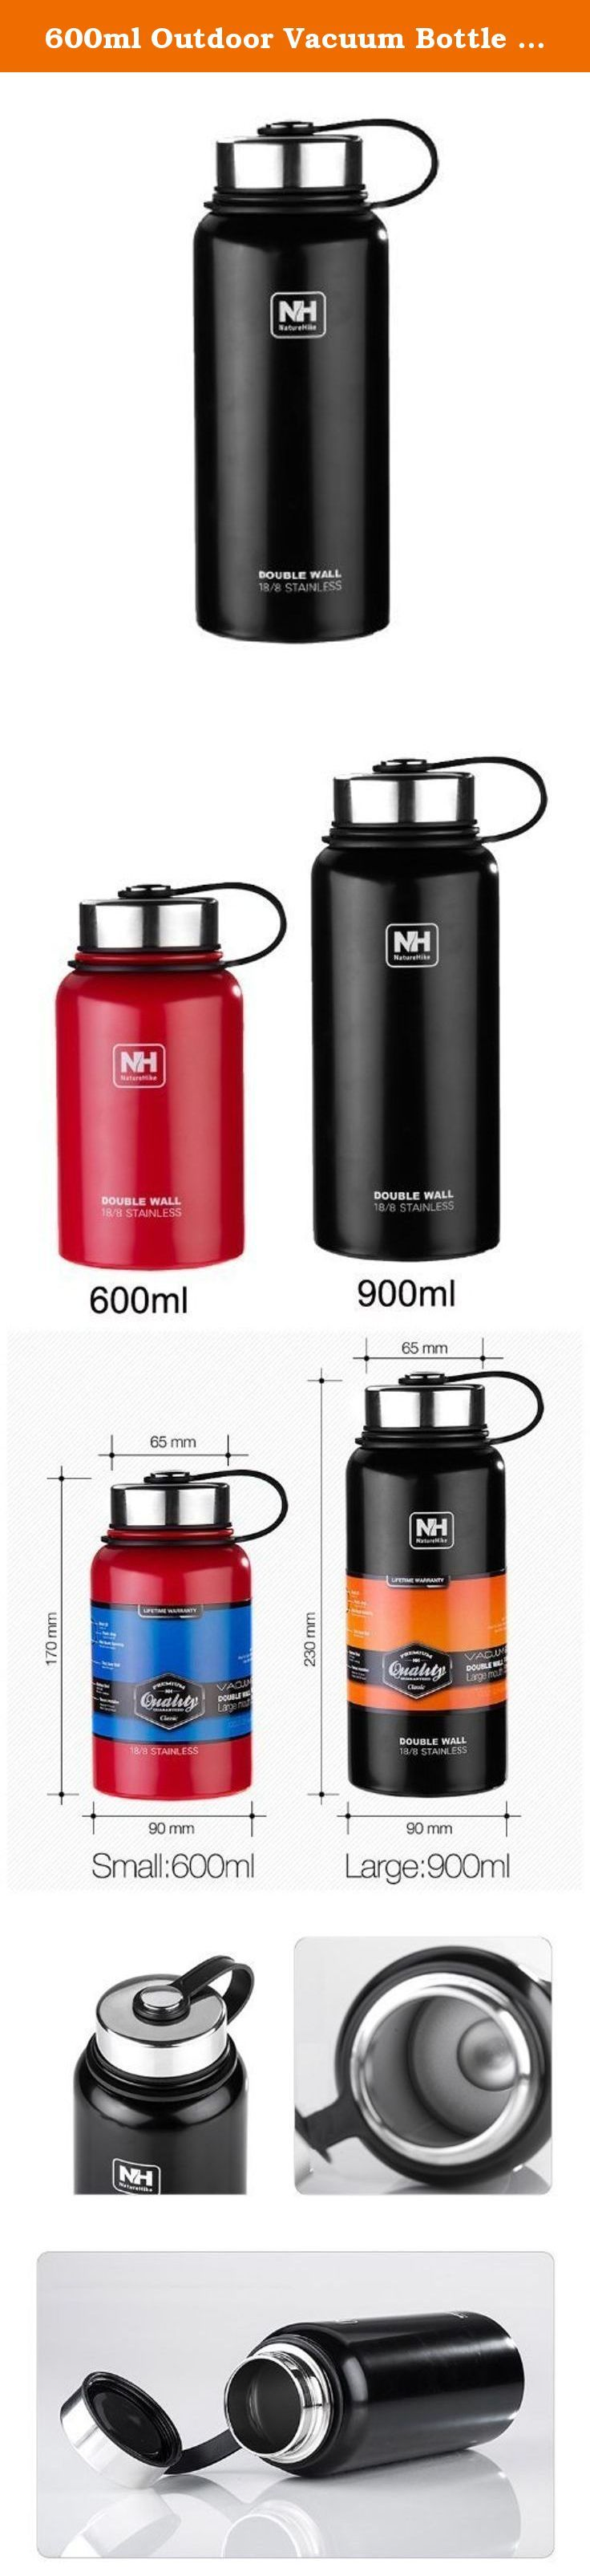 600ml Outdoor Vacuum Bottle Vacuum Flask Stainless Steel Camping Cup Sport Bottle (Black, 600ML). Brand:Naturehike Size:22x6.5cm Color:Red(600ml),Black(900ml) Material:Stainless steel Holding time:20 hours Features: 1.Large mouth openings,easy to clean. 2.Made of stainless steel. 3.30% lighter,strong as ever. 4.Double wall construction,unbreakable. 5.Vacuum insulation,keeps to temp all day. .